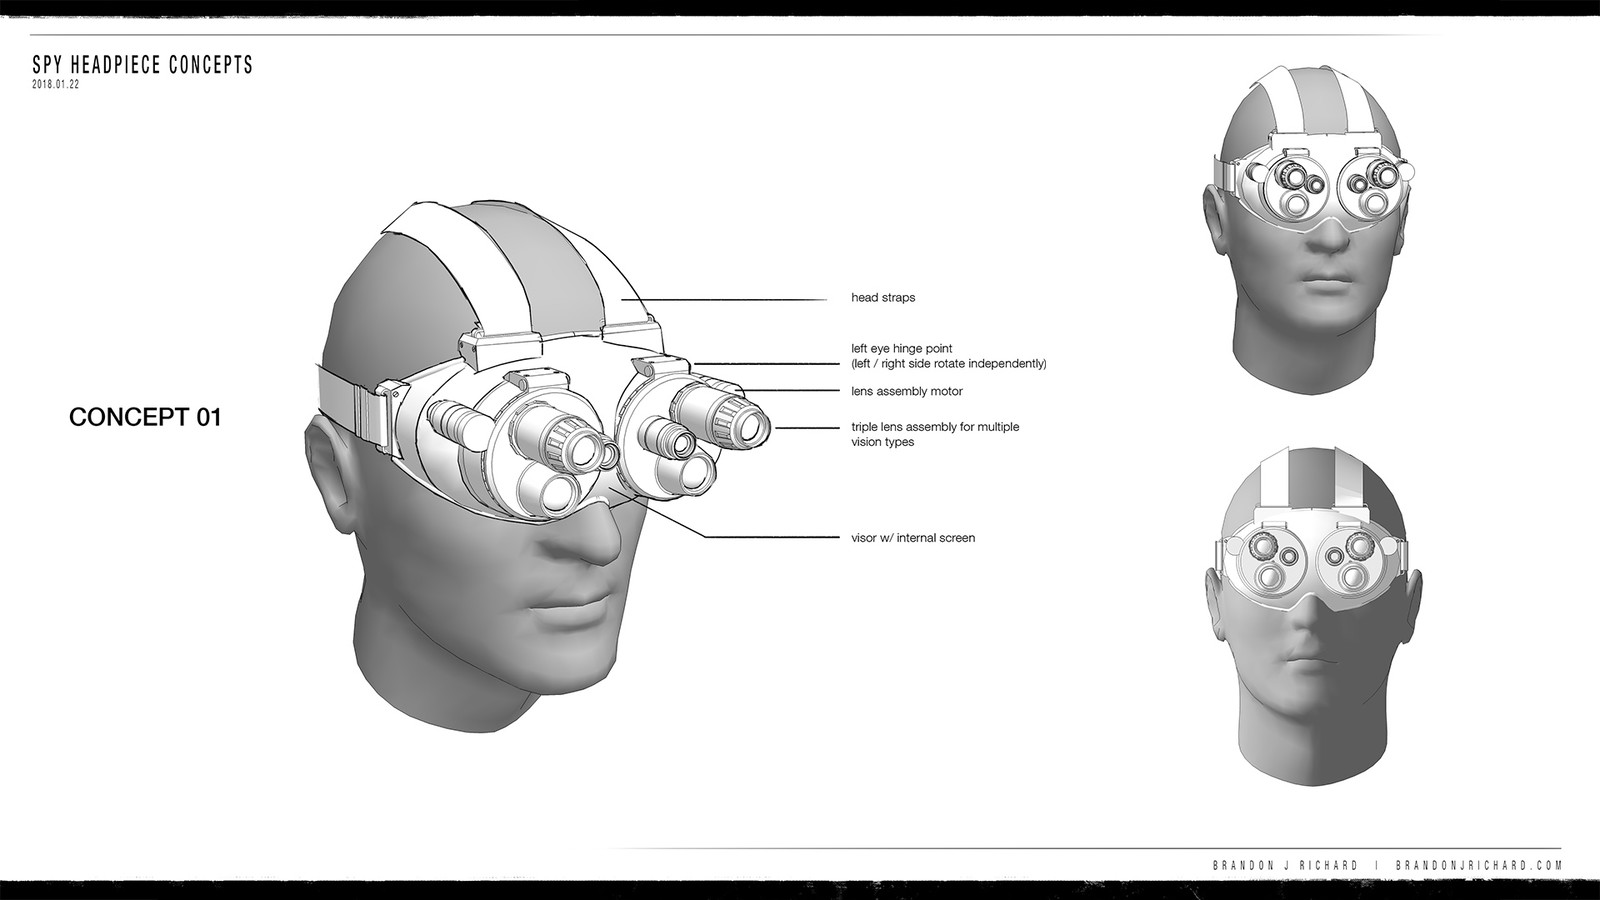 Concept board of the approved headpiece, with alternate views.